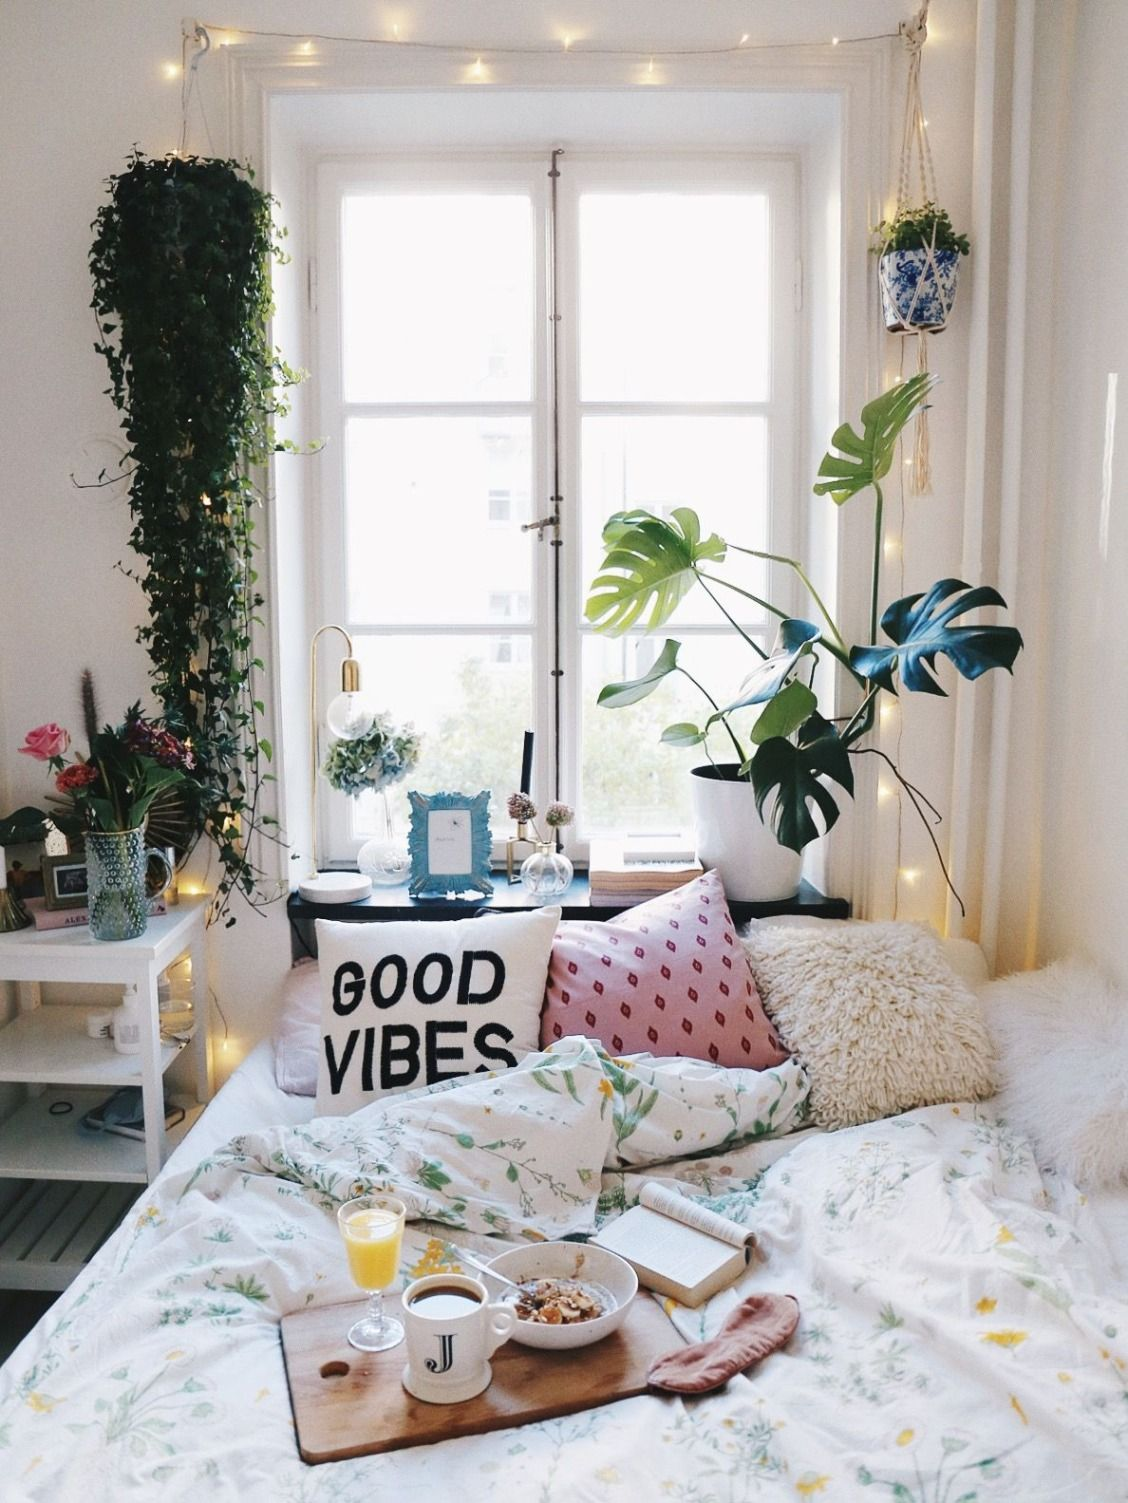 Minus The Good Vibes Pillow